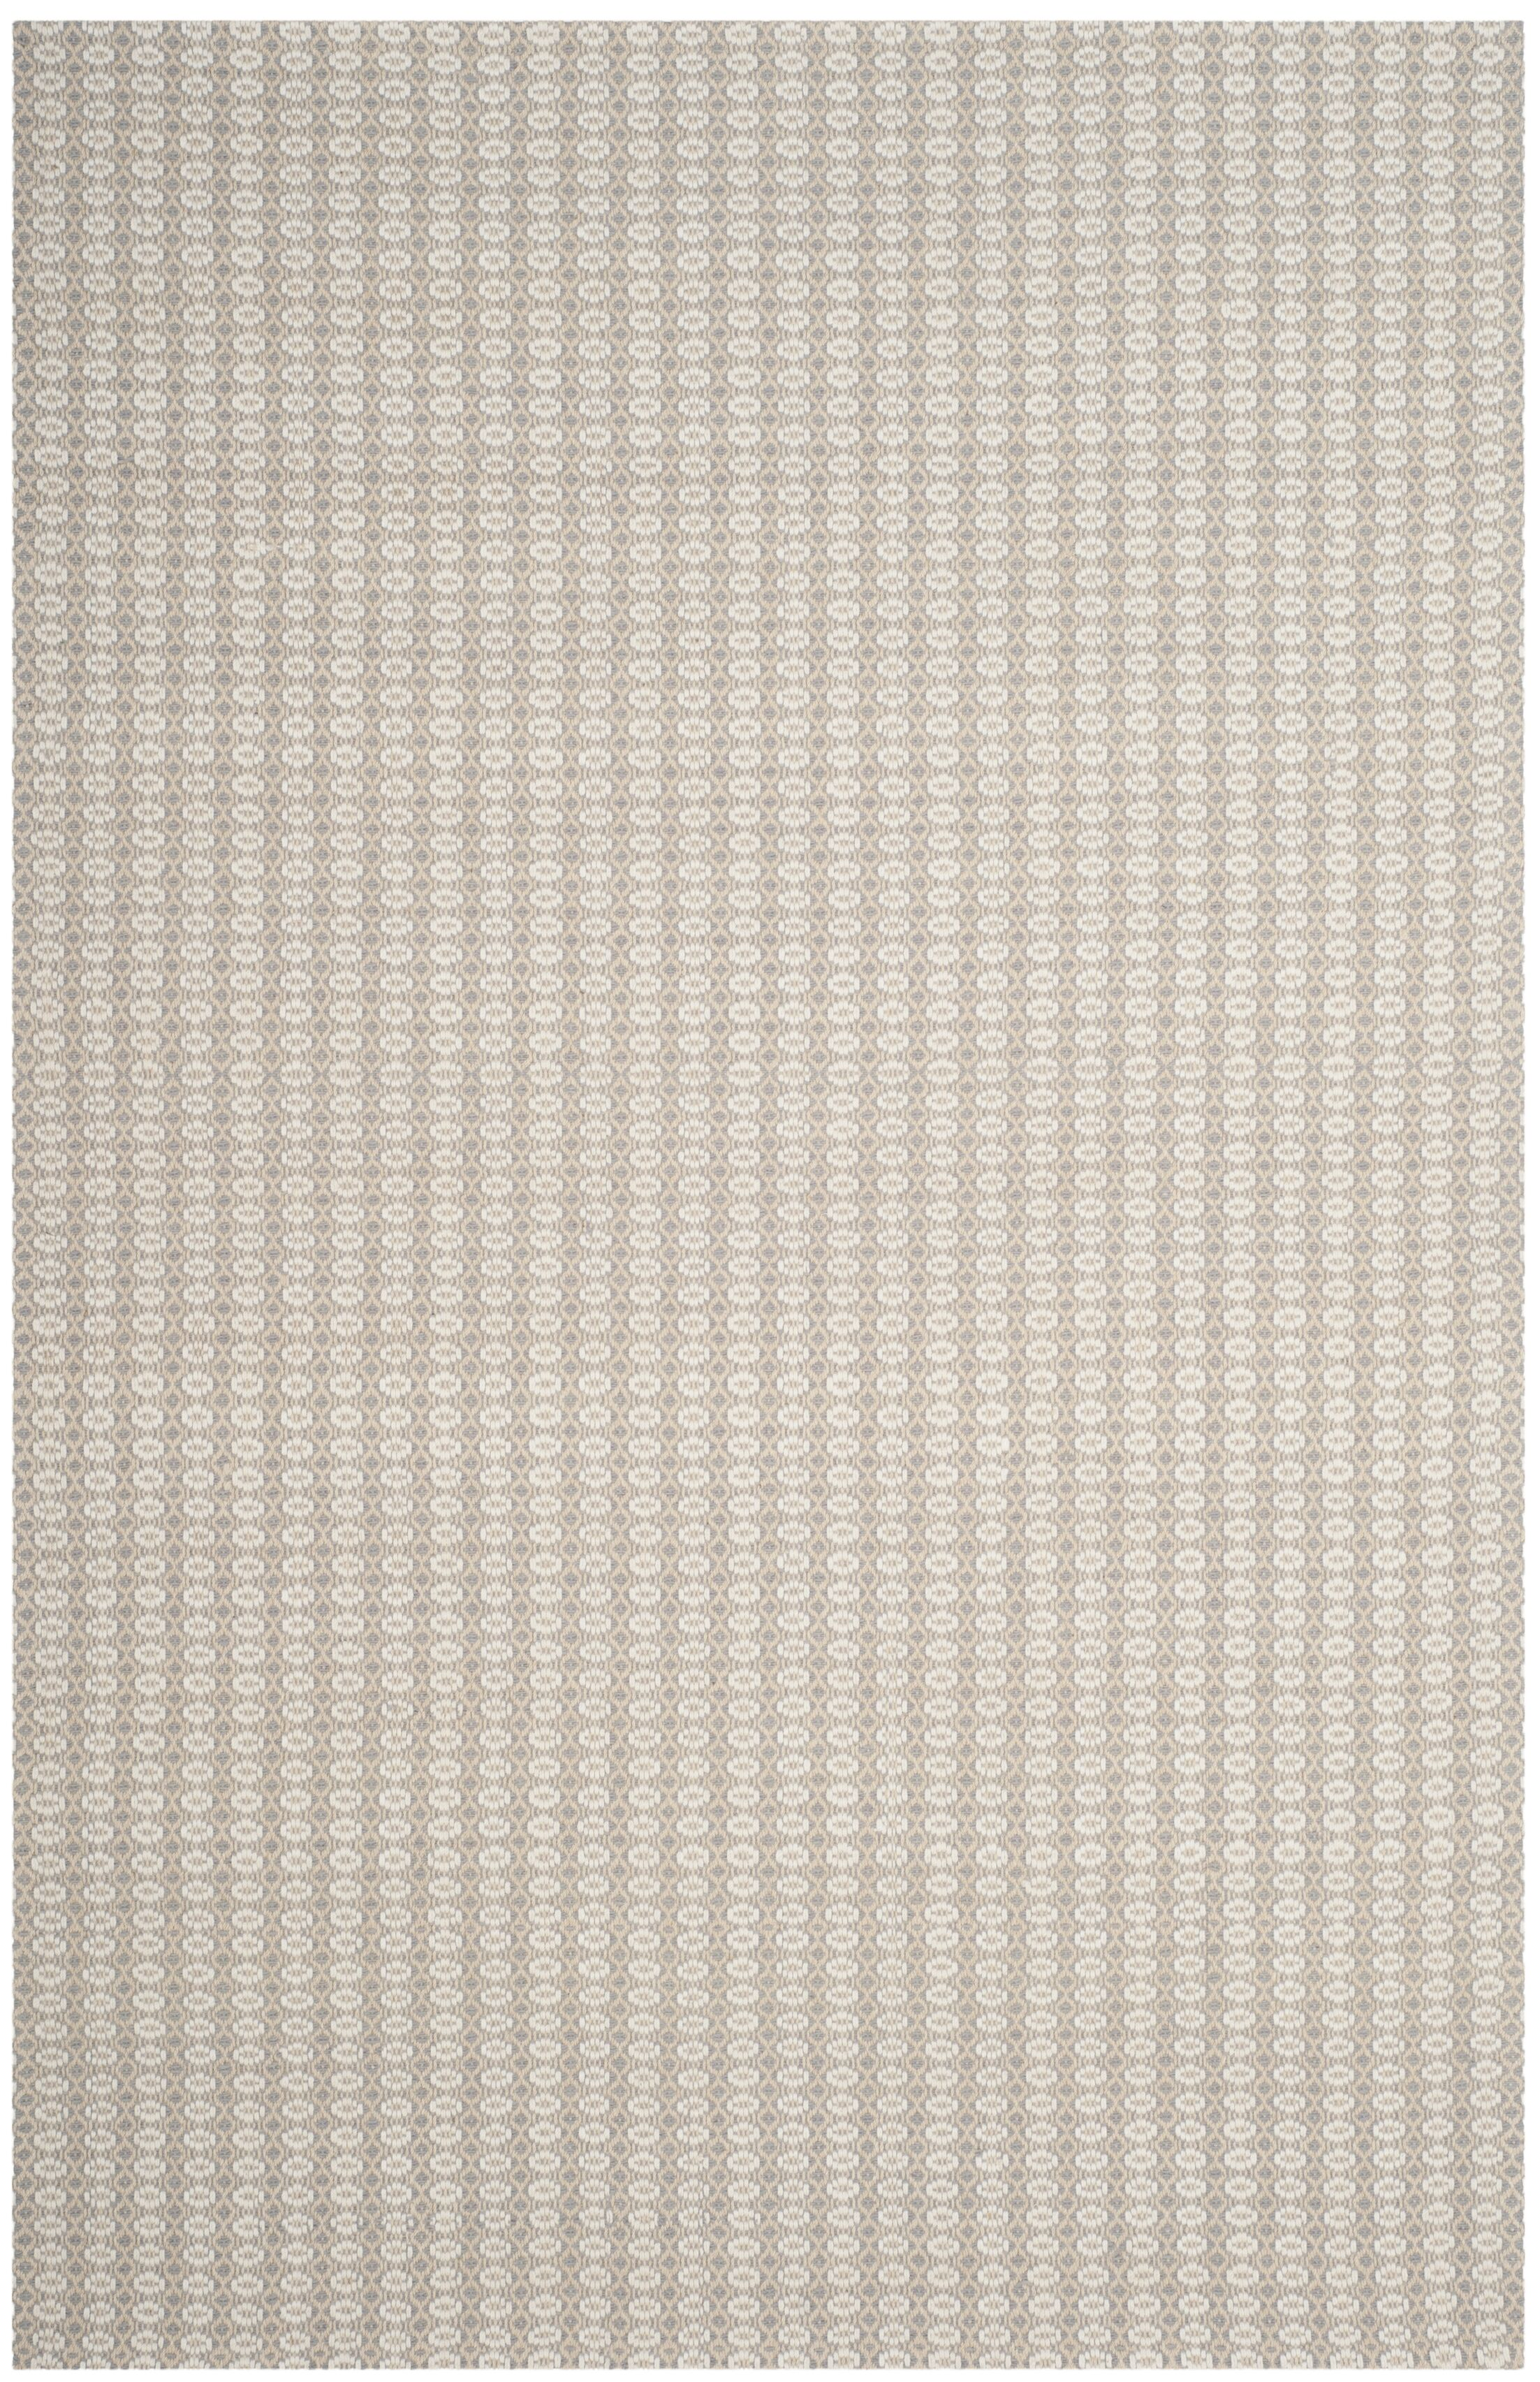 Cherif Hand Tufted Rectangle Gray Solid Area Rug Rug Size: Rectangle 5' x 8'